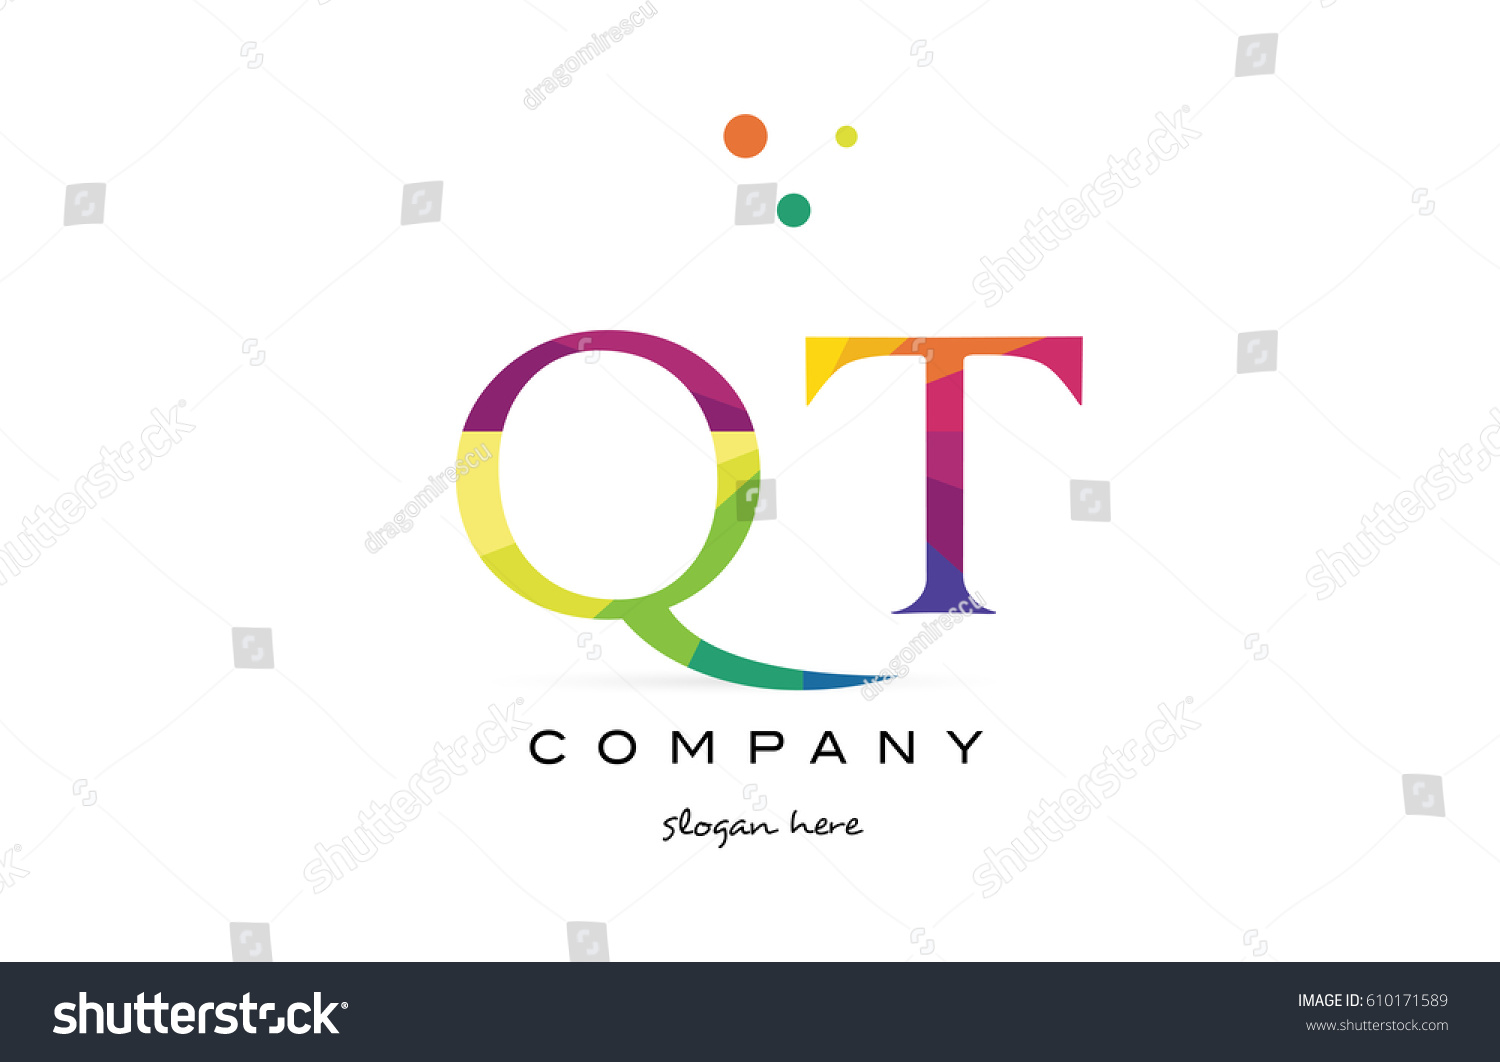 qt q t creative rainbow colors colored alphabet company letter logo design  vector icon template